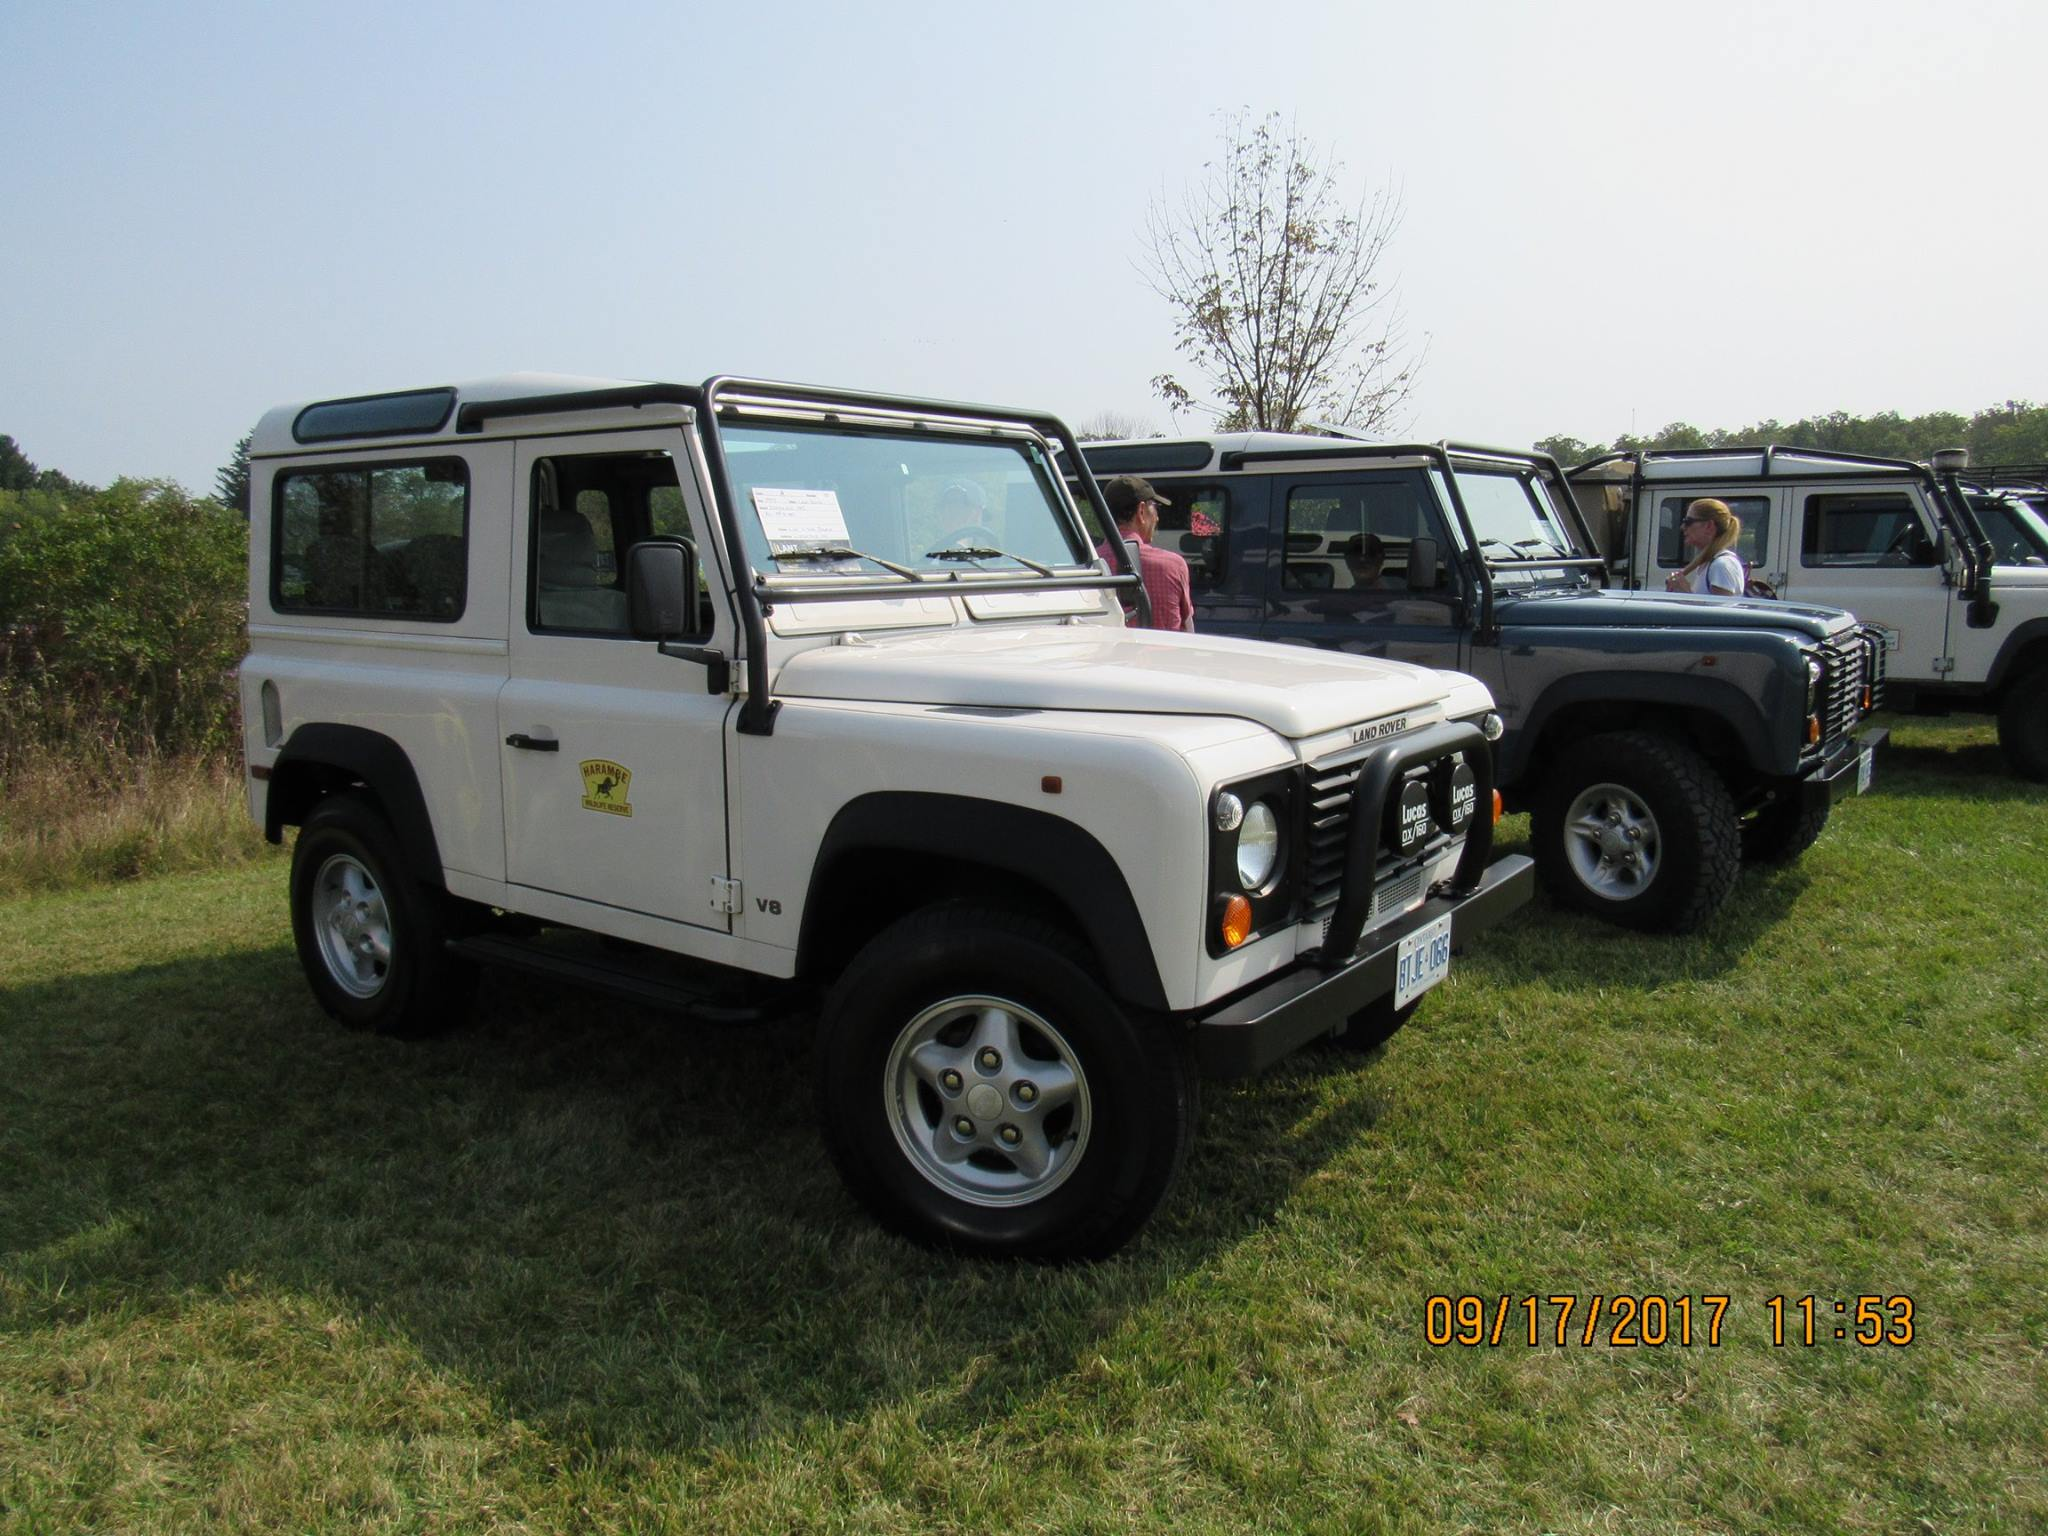 20170917-bcd-Land Rovers